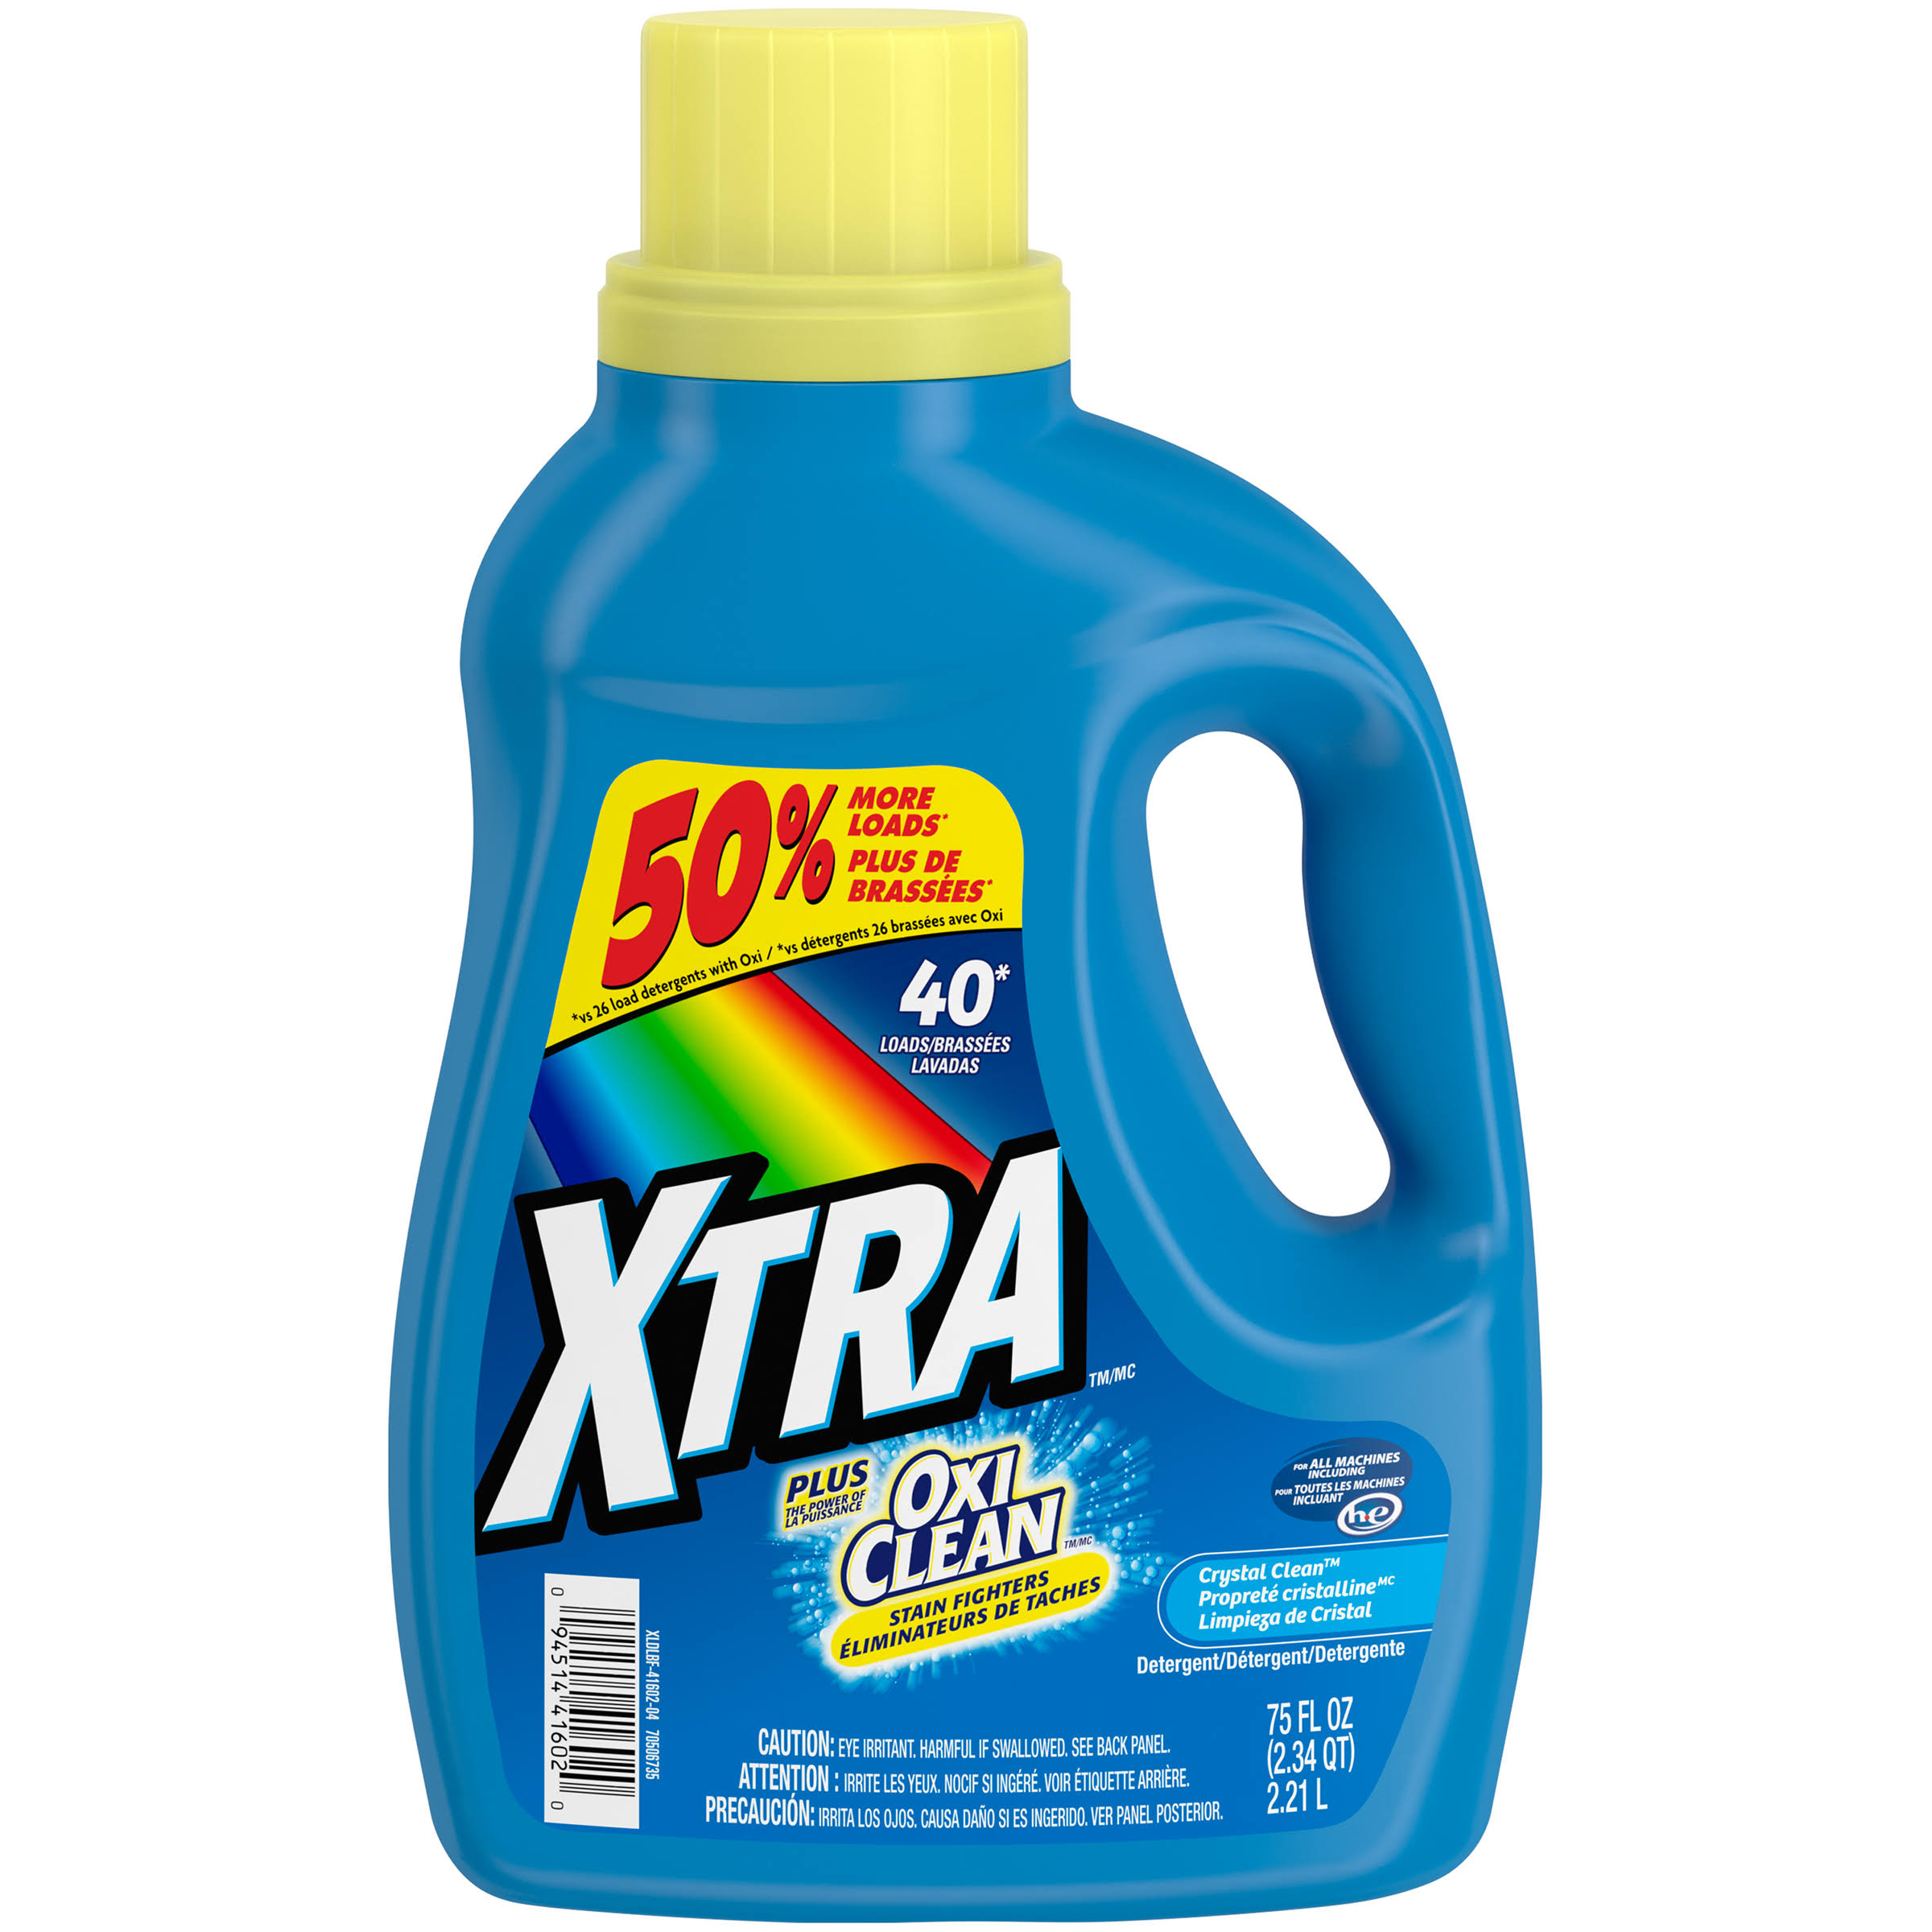 Xtra Crystal Clean Laundry Detergent Plus Oxi Clean - 58oz